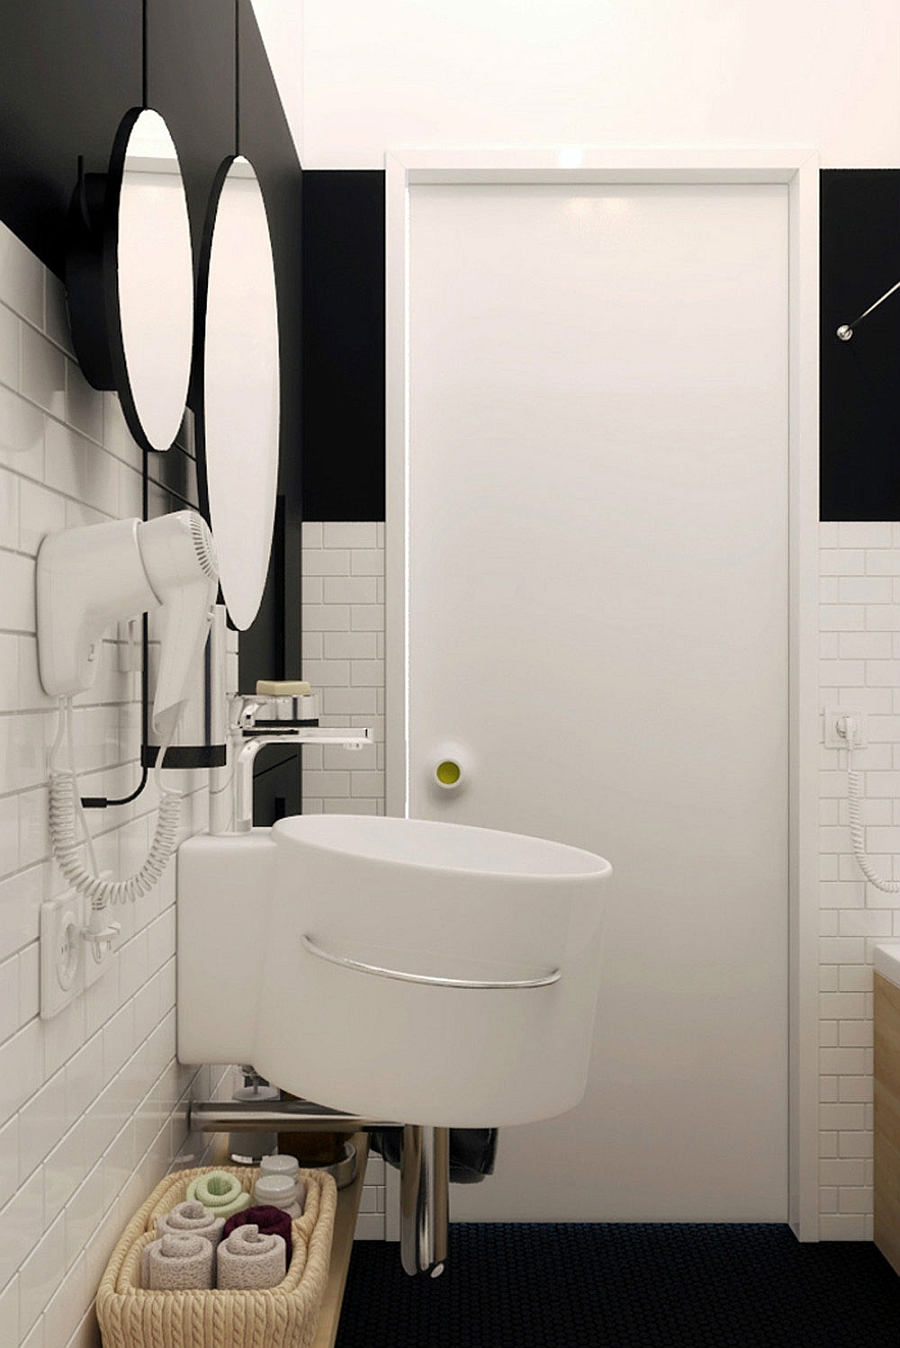 Wall-mouted sink for a small bathroom